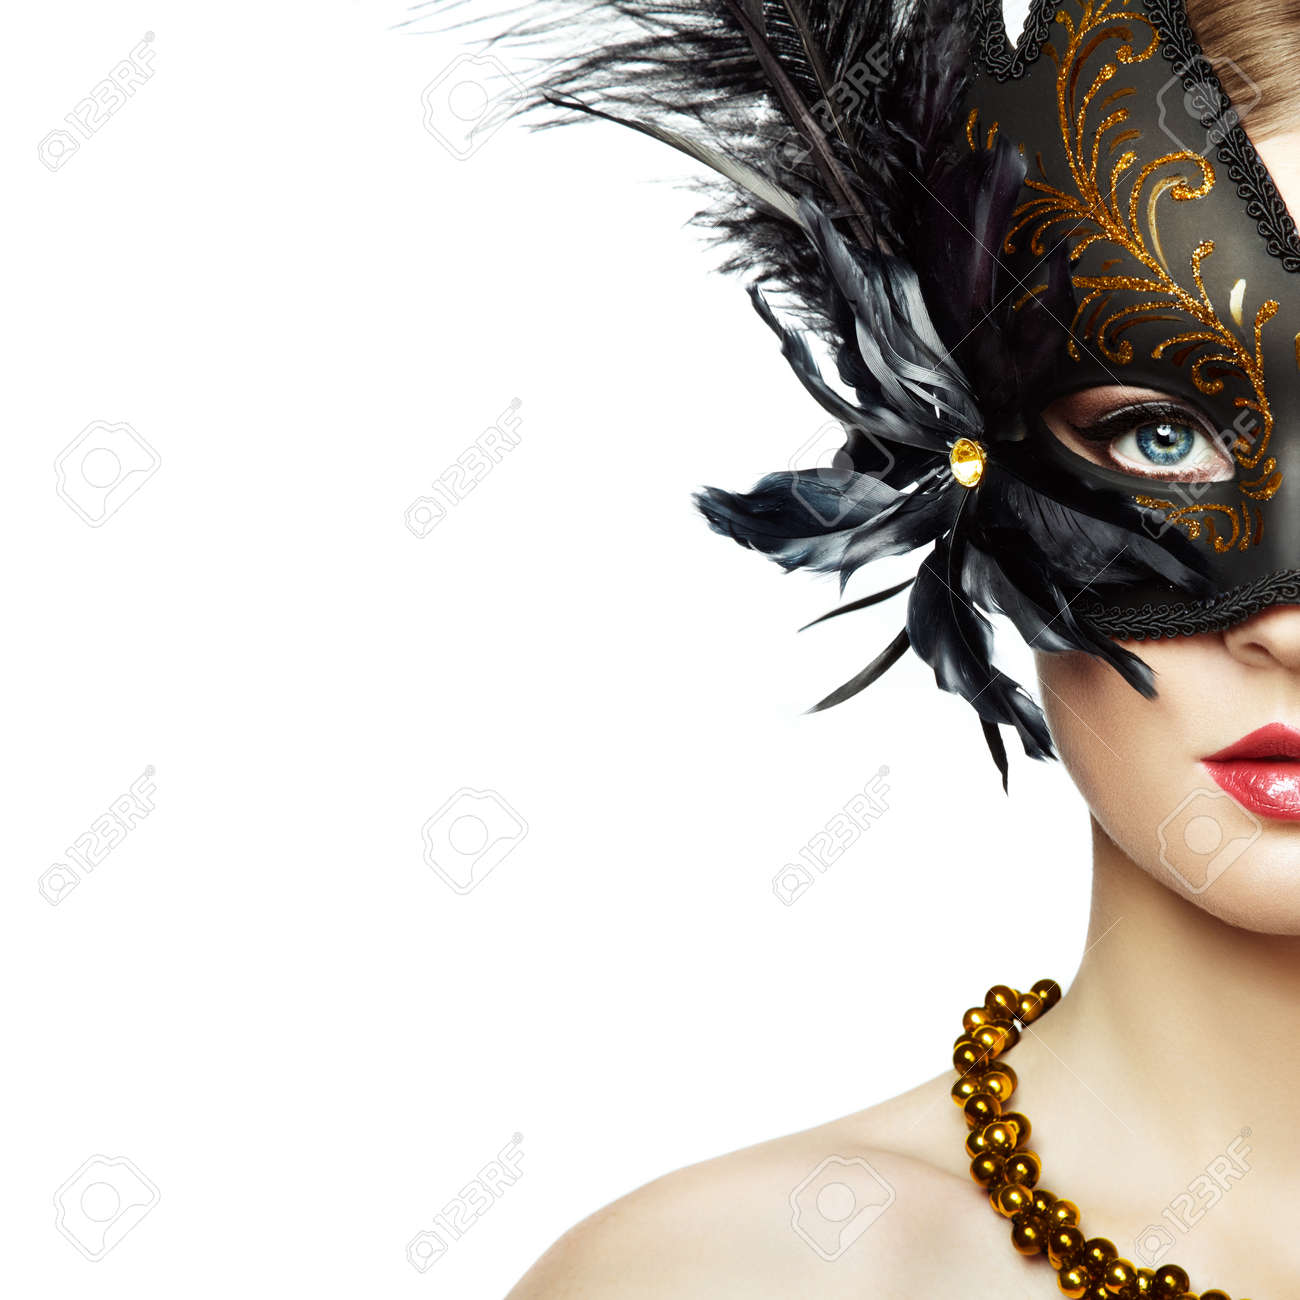 Beautiful young Woman in Mysterious Black Venetian Mask. Fashion photo. Masquerade Mask with Black Feathers - 95961836